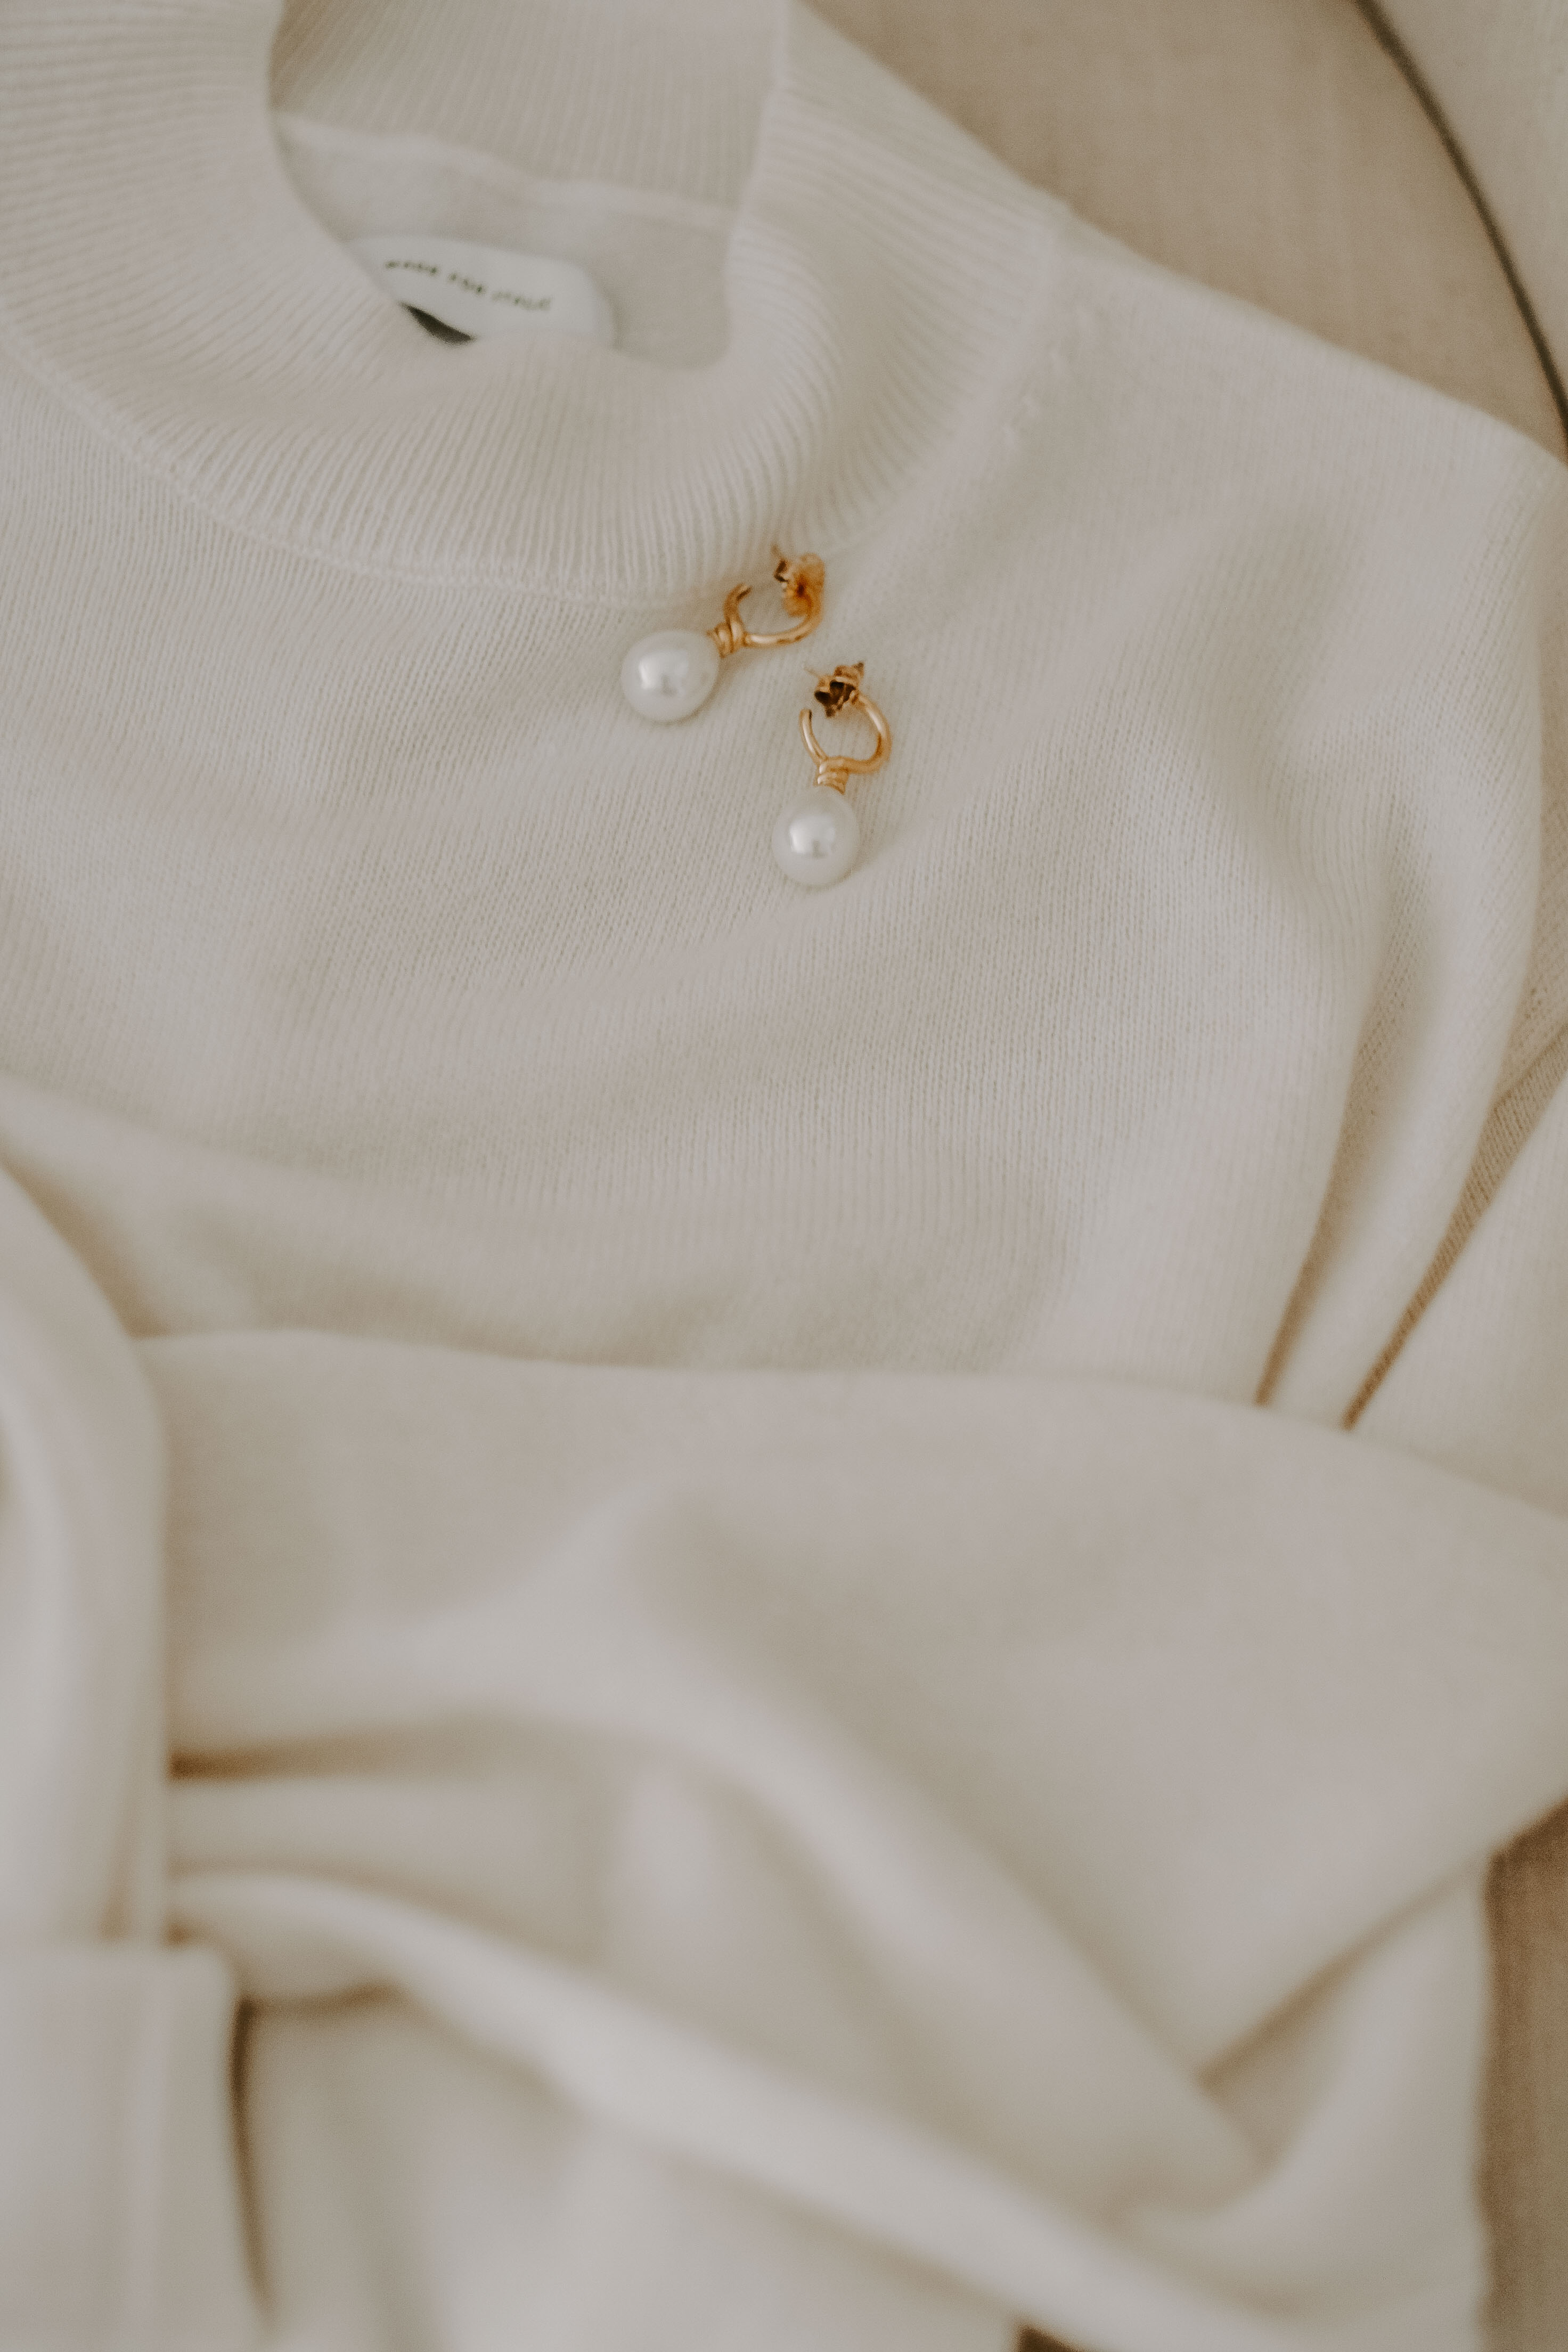 cashmere sweater and pearl earrings